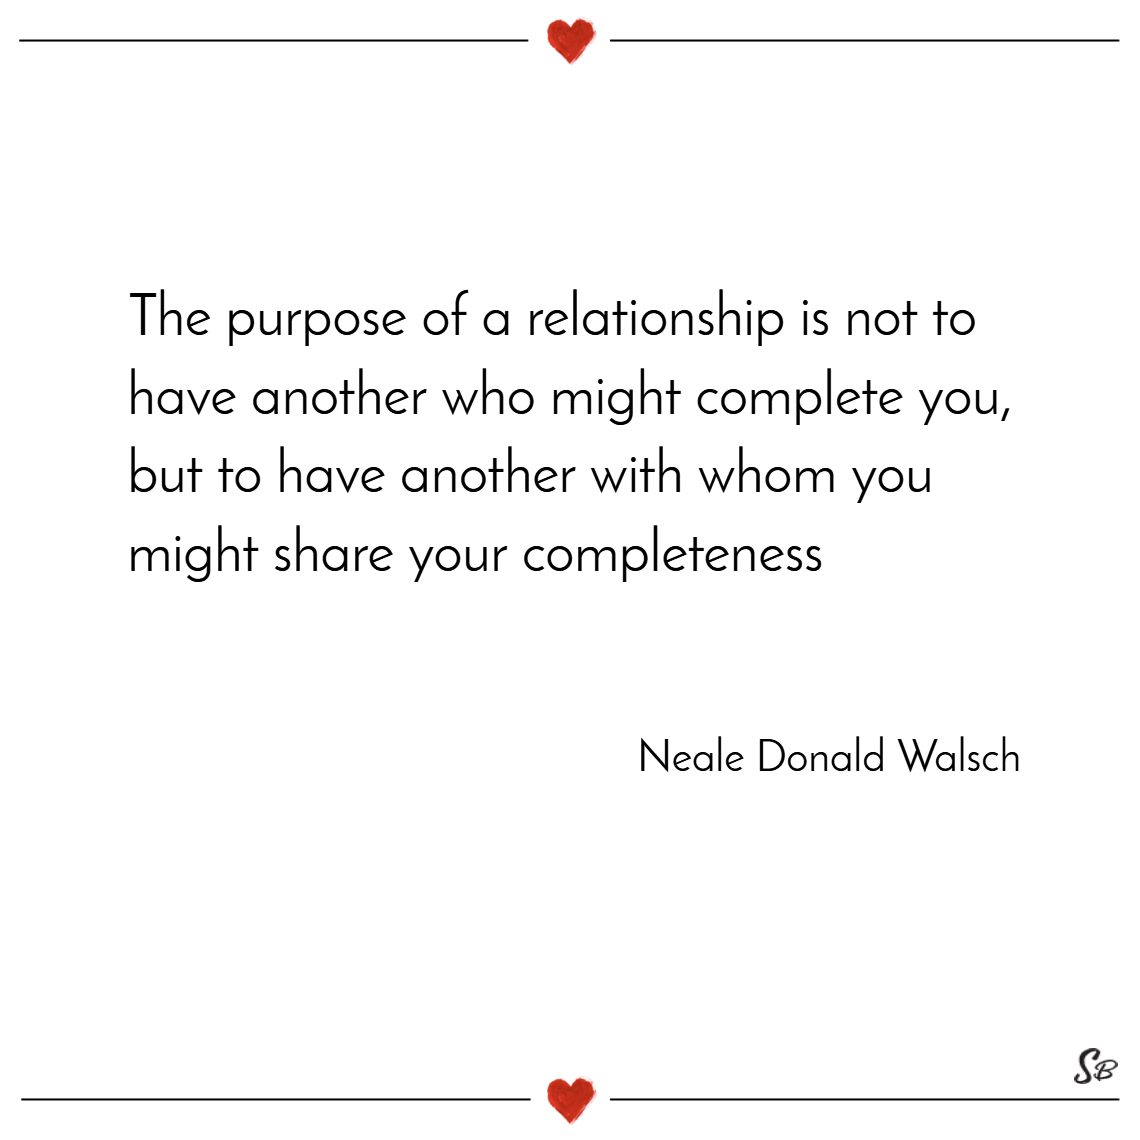 The purpose of a relationship is not to have anoth